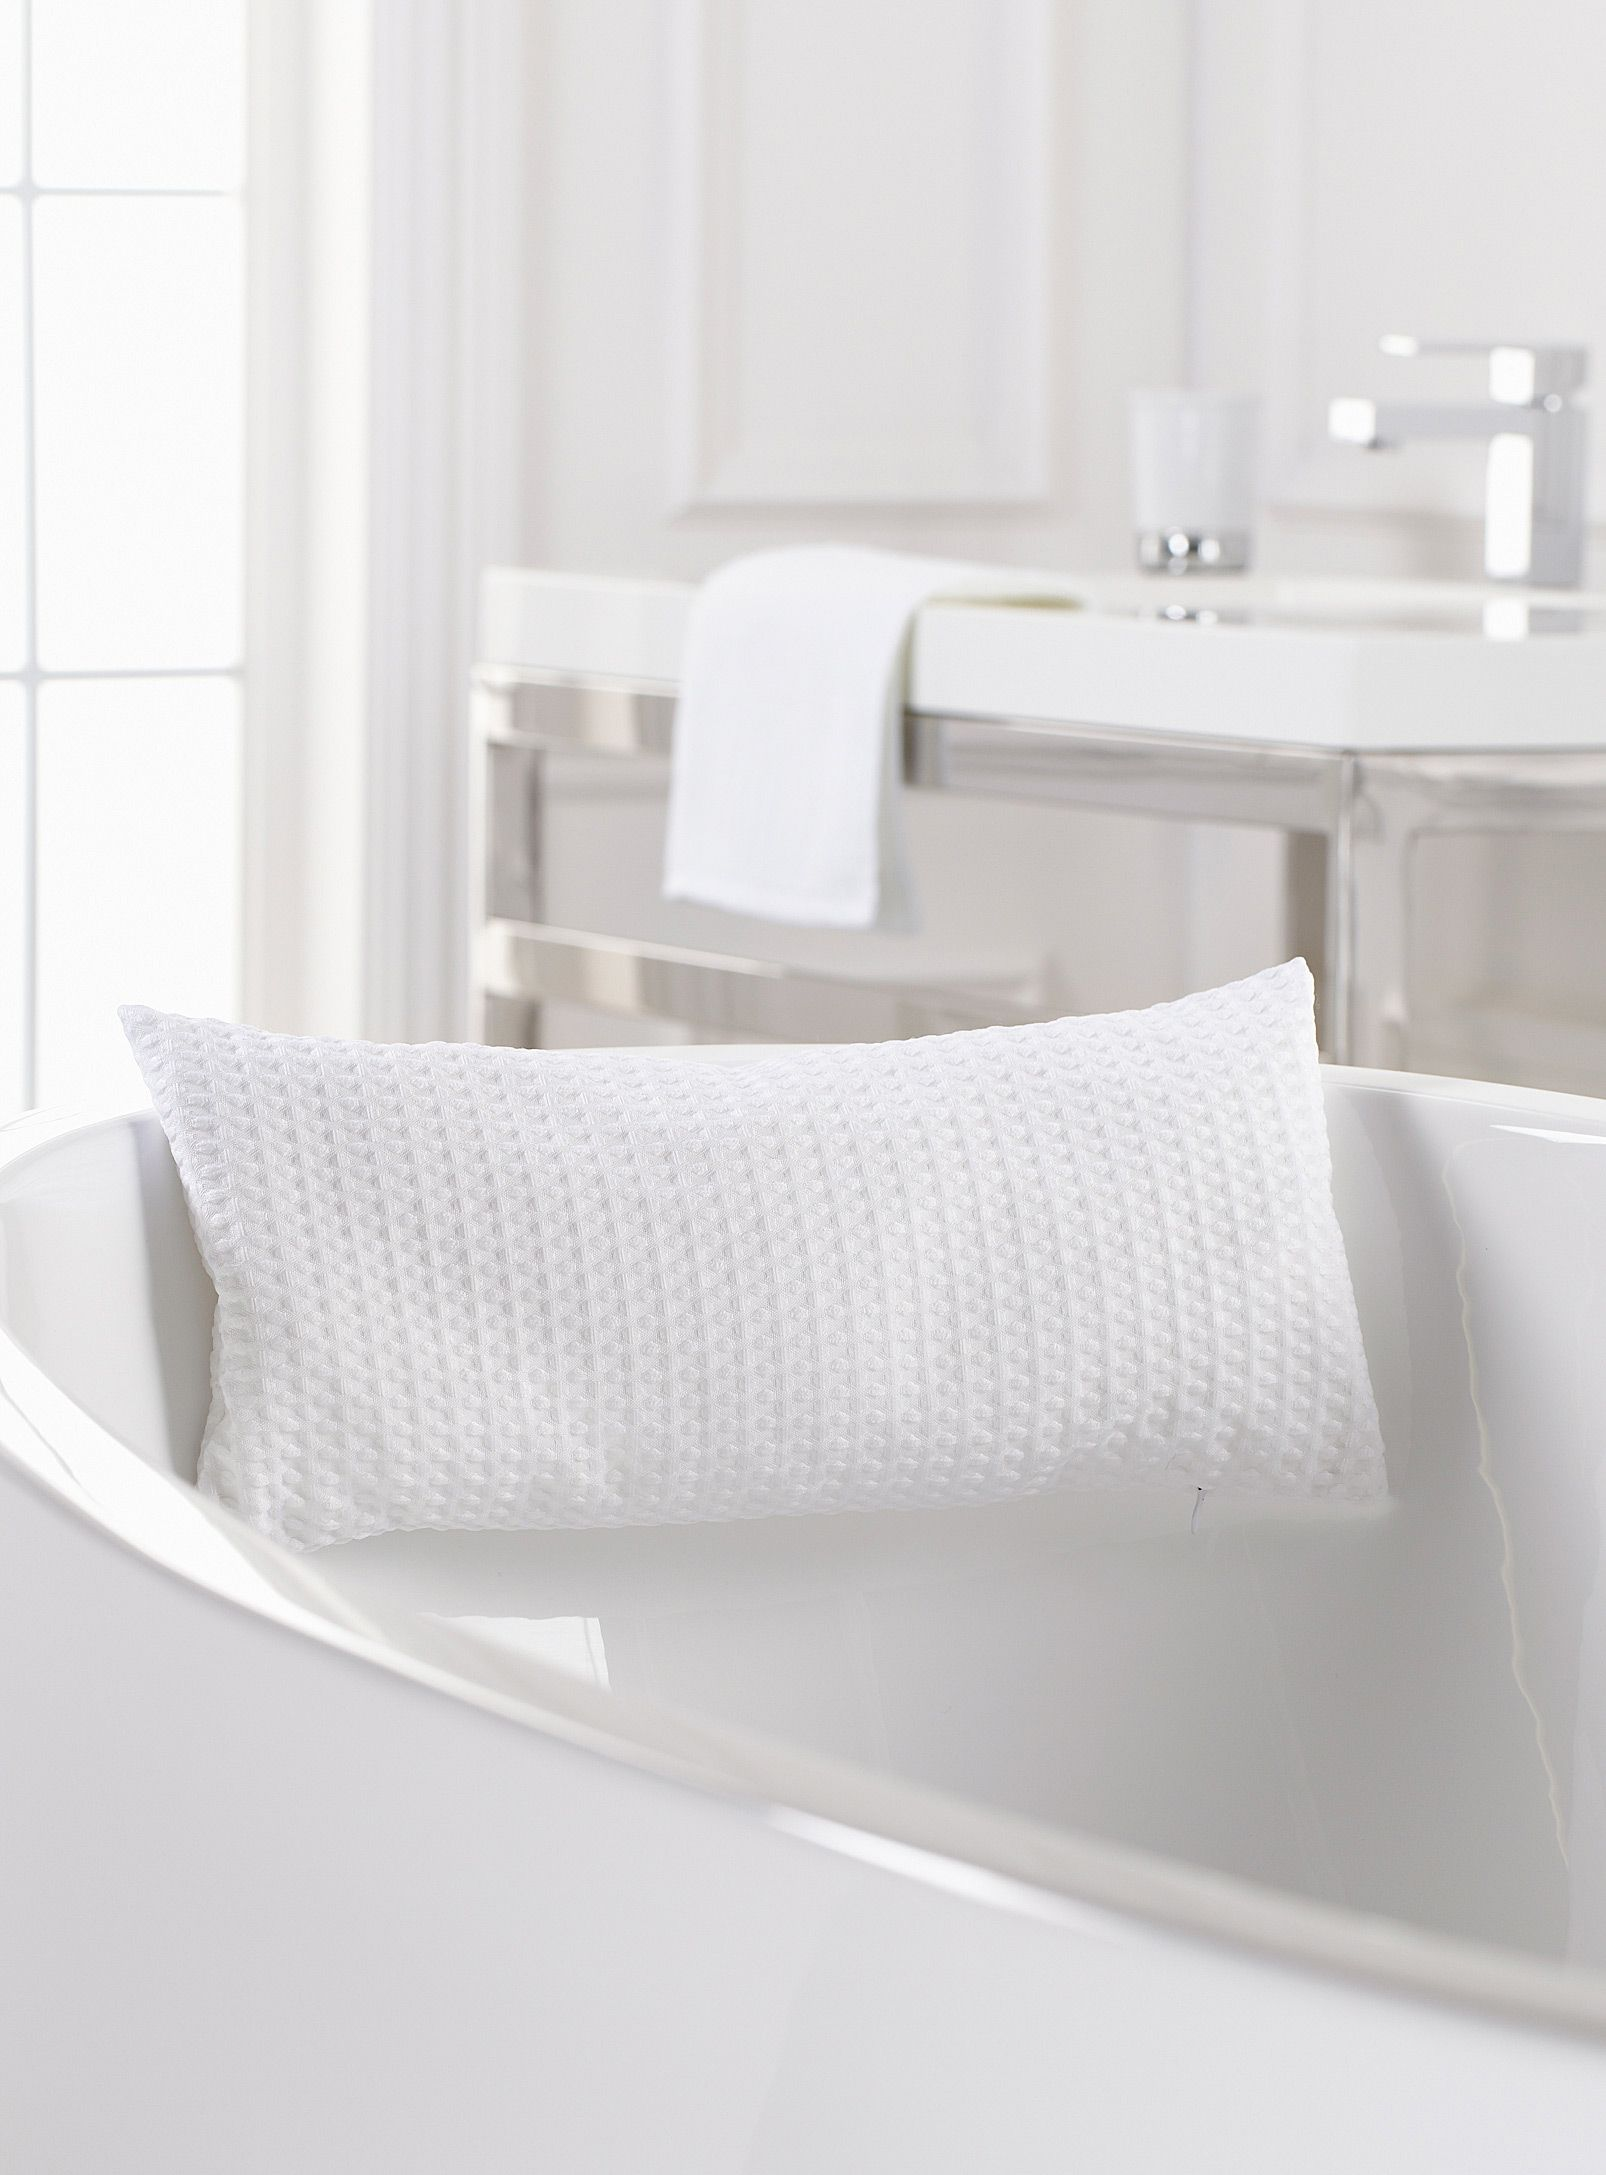 Shop for bathroom accessories - Shop Bathroom Accessories Accessory Sets Online In Canada Simons